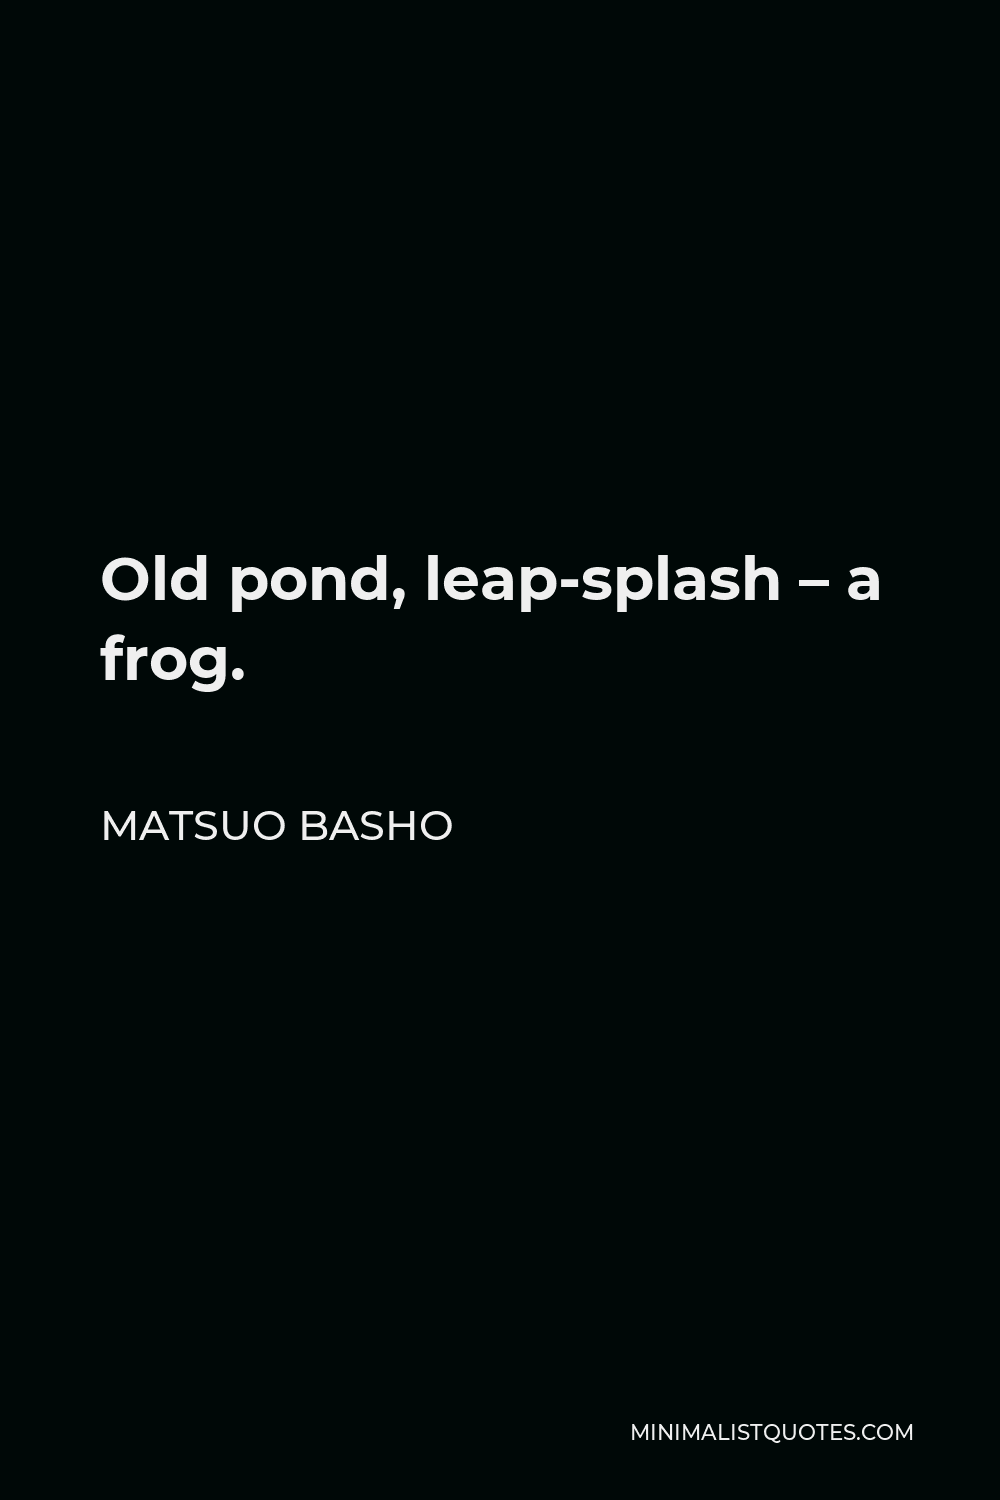 Matsuo Basho Quote - Old pond, leap-splash – a frog.